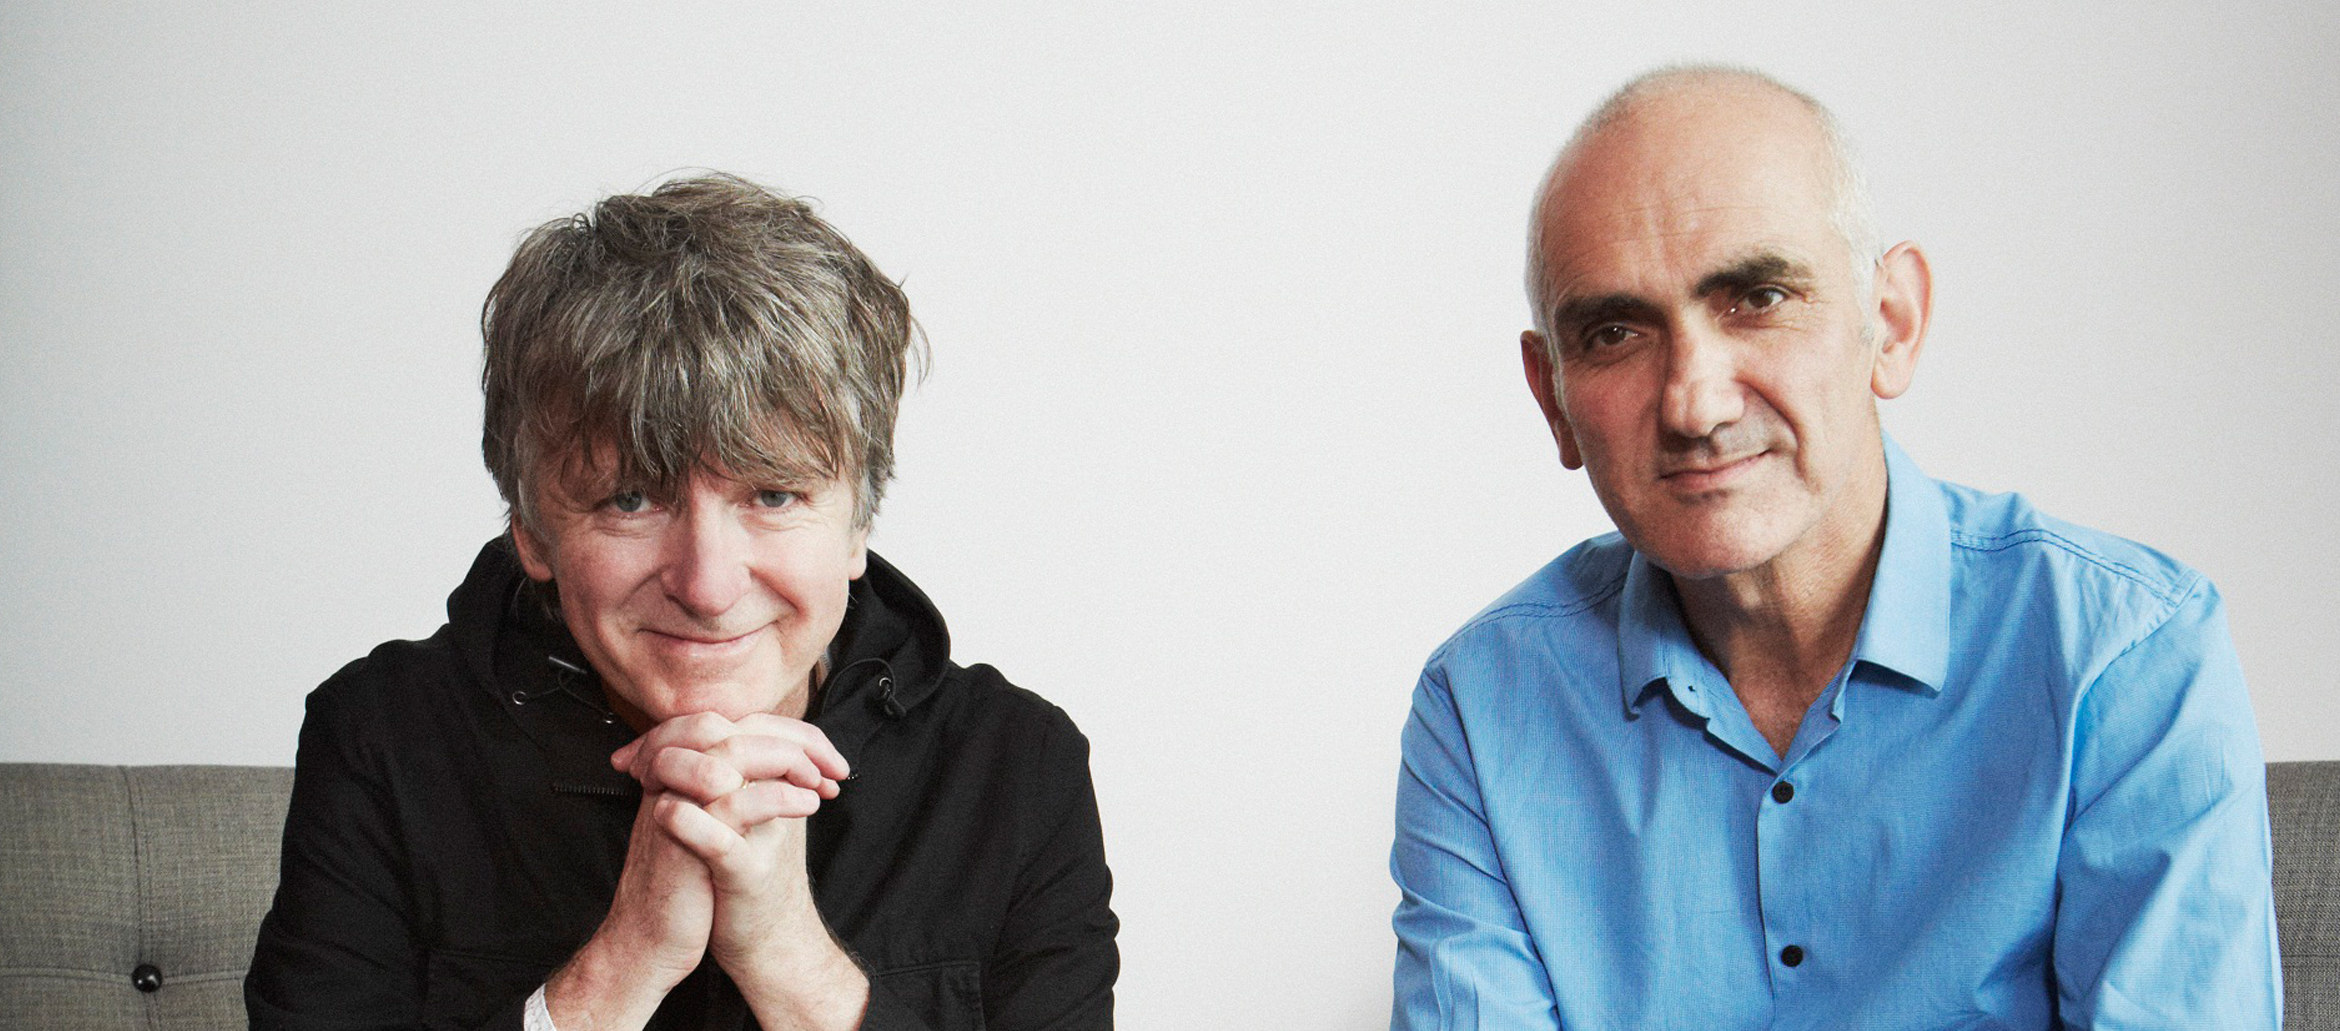 Neil Finn + Paul Kelly - Artist Image